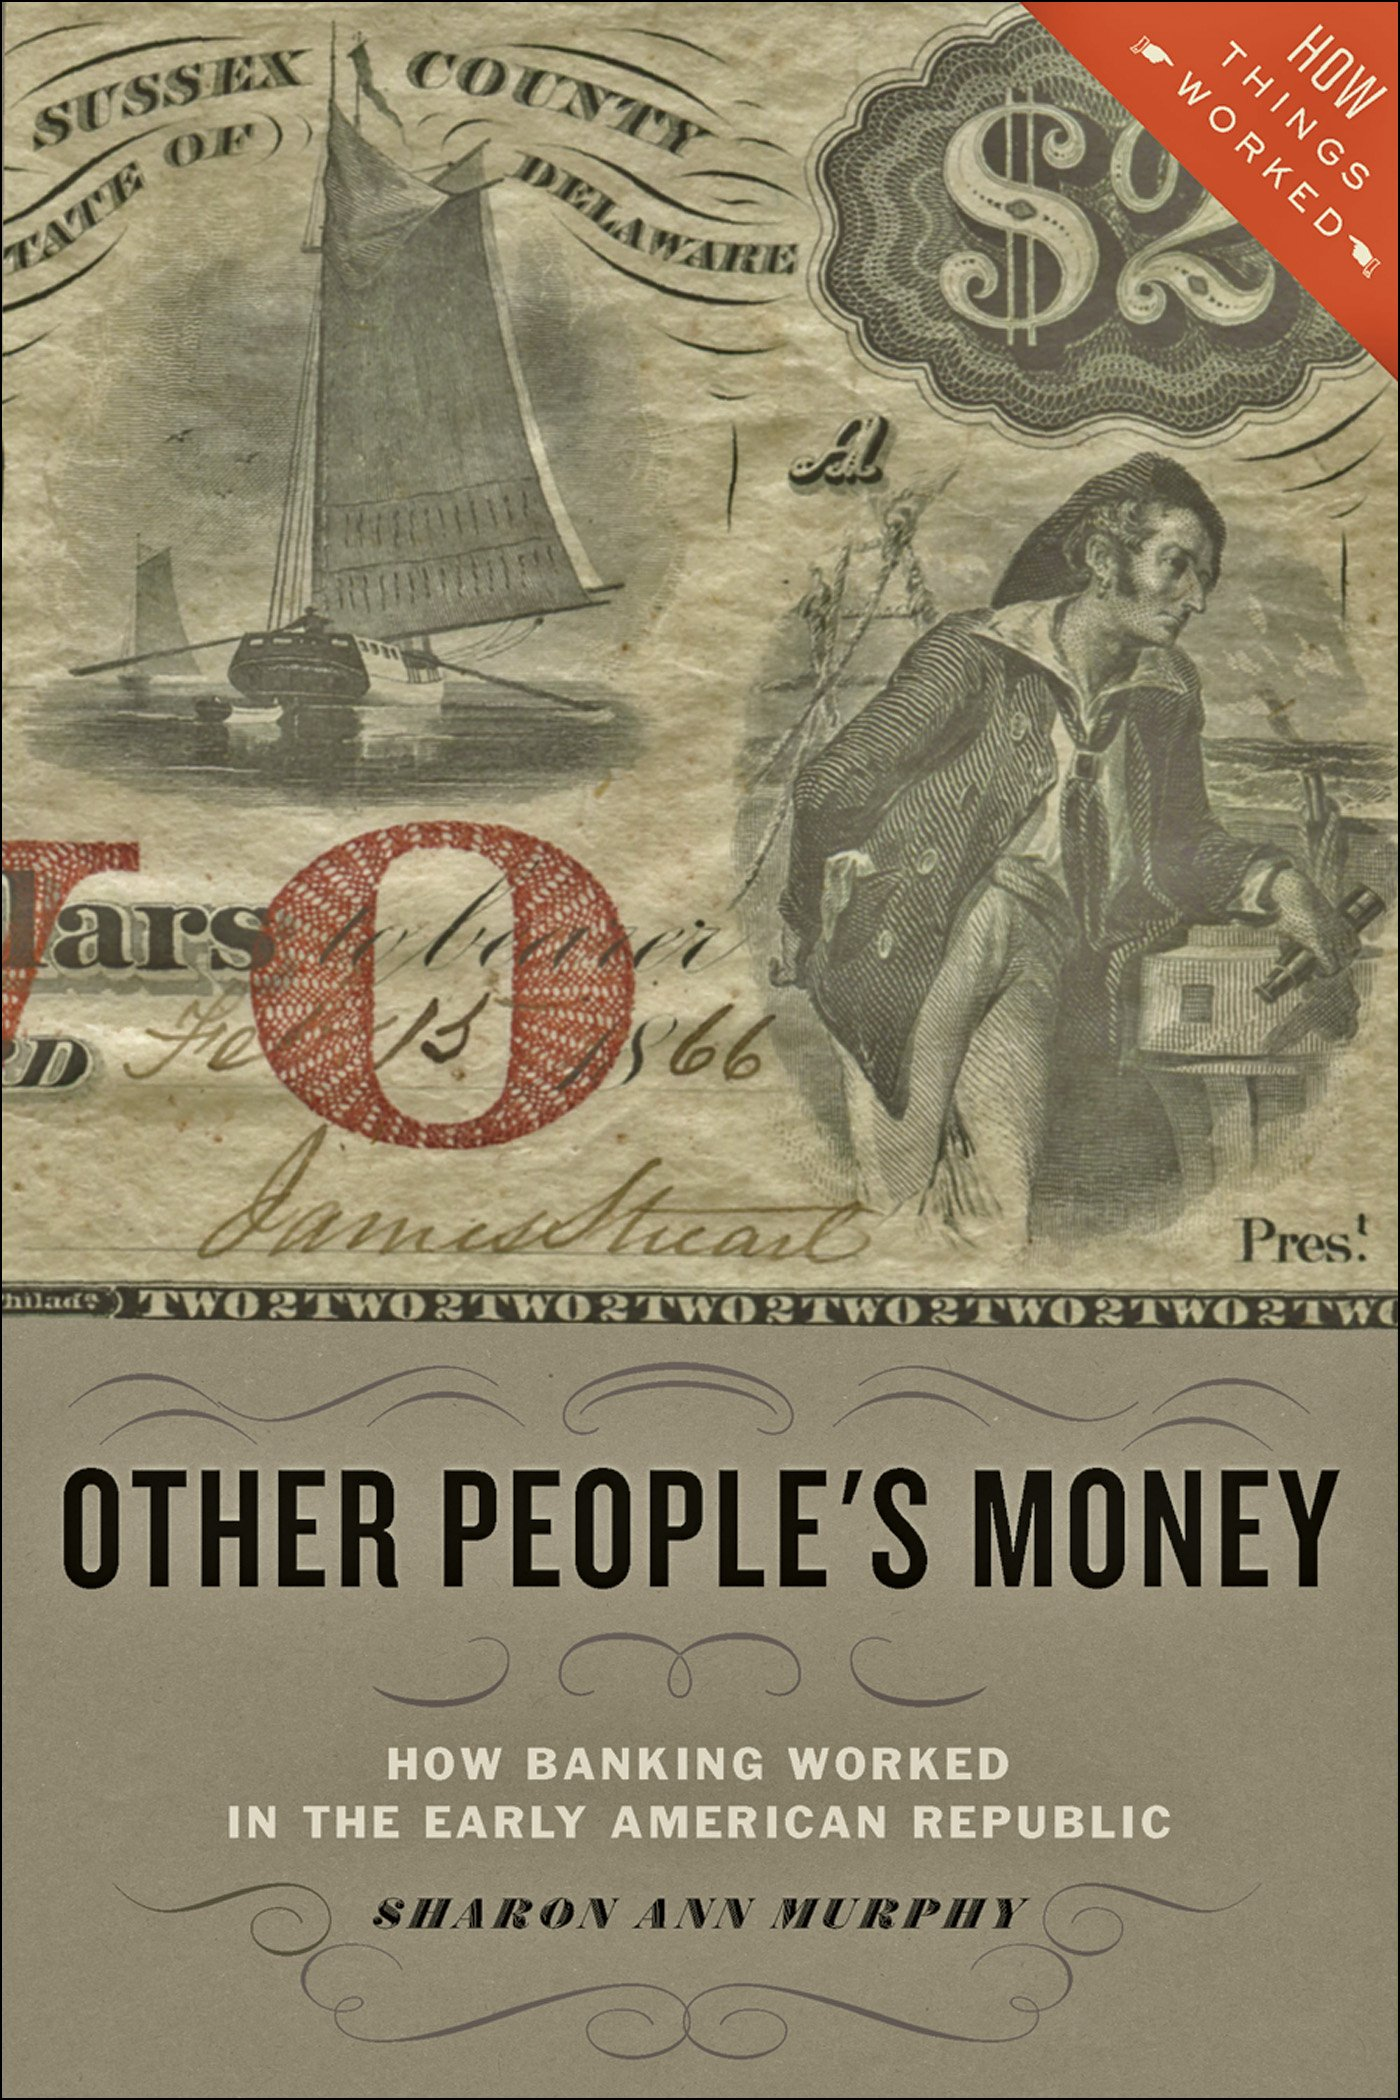 Other People's Money (How Things Worked)